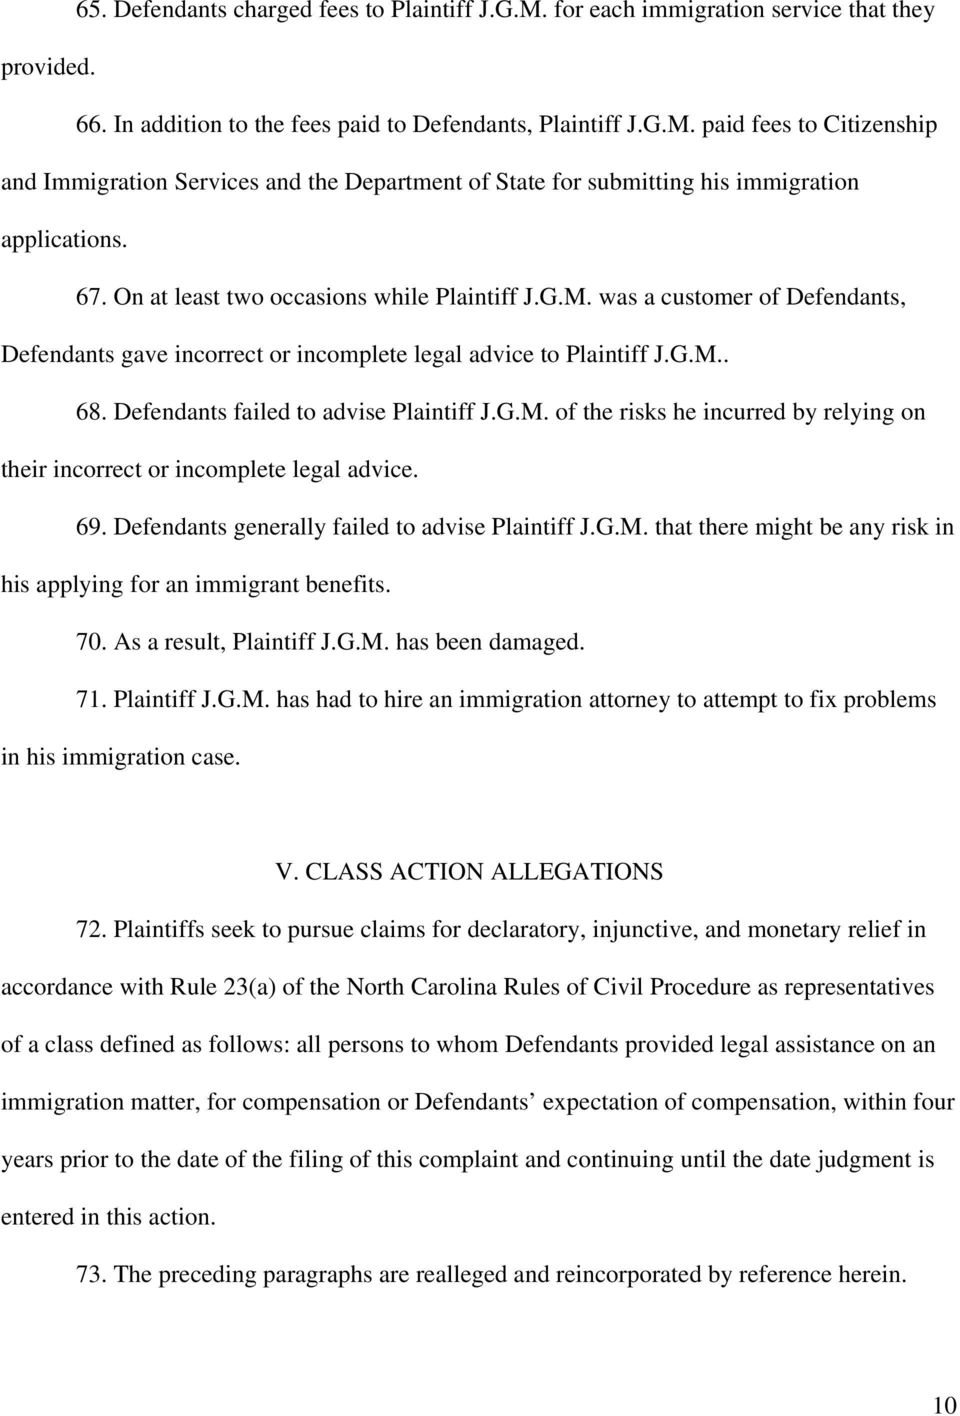 Defendants failed to advise Plaintiff J.G.M. of the risks he incurred by relying on their incorrect or incomplete legal advice. 69. Defendants generally failed to advise Plaintiff J.G.M. that there might be any risk in his applying for an immigrant benefits.